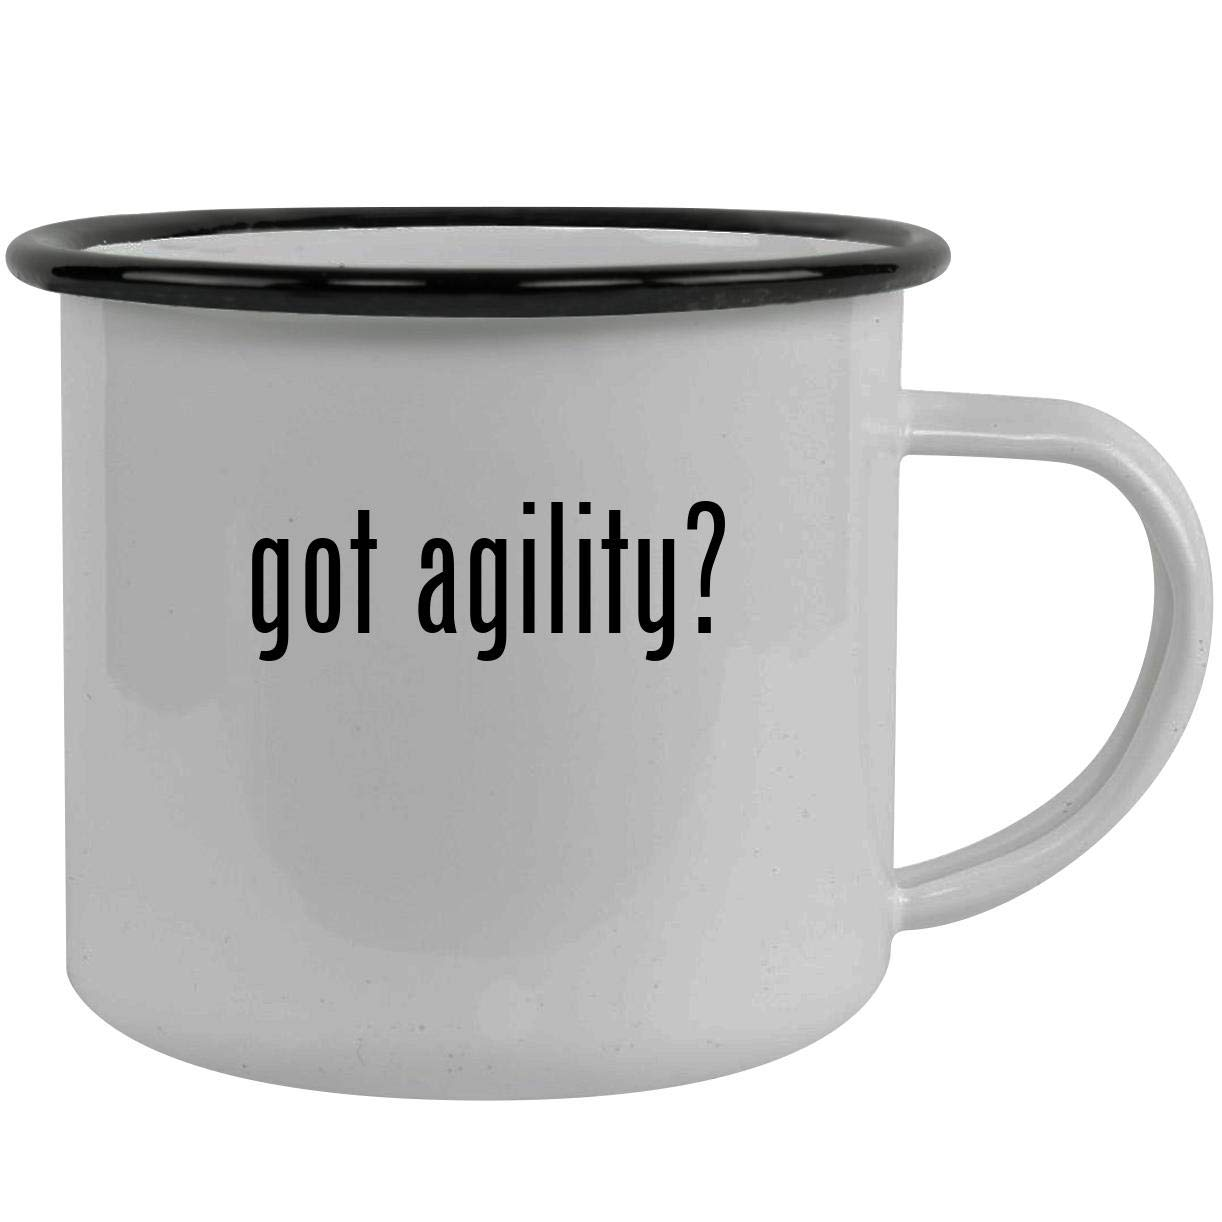 got agility? - Stainless Steel 12oz Camping Mug, Black by Molandra Products